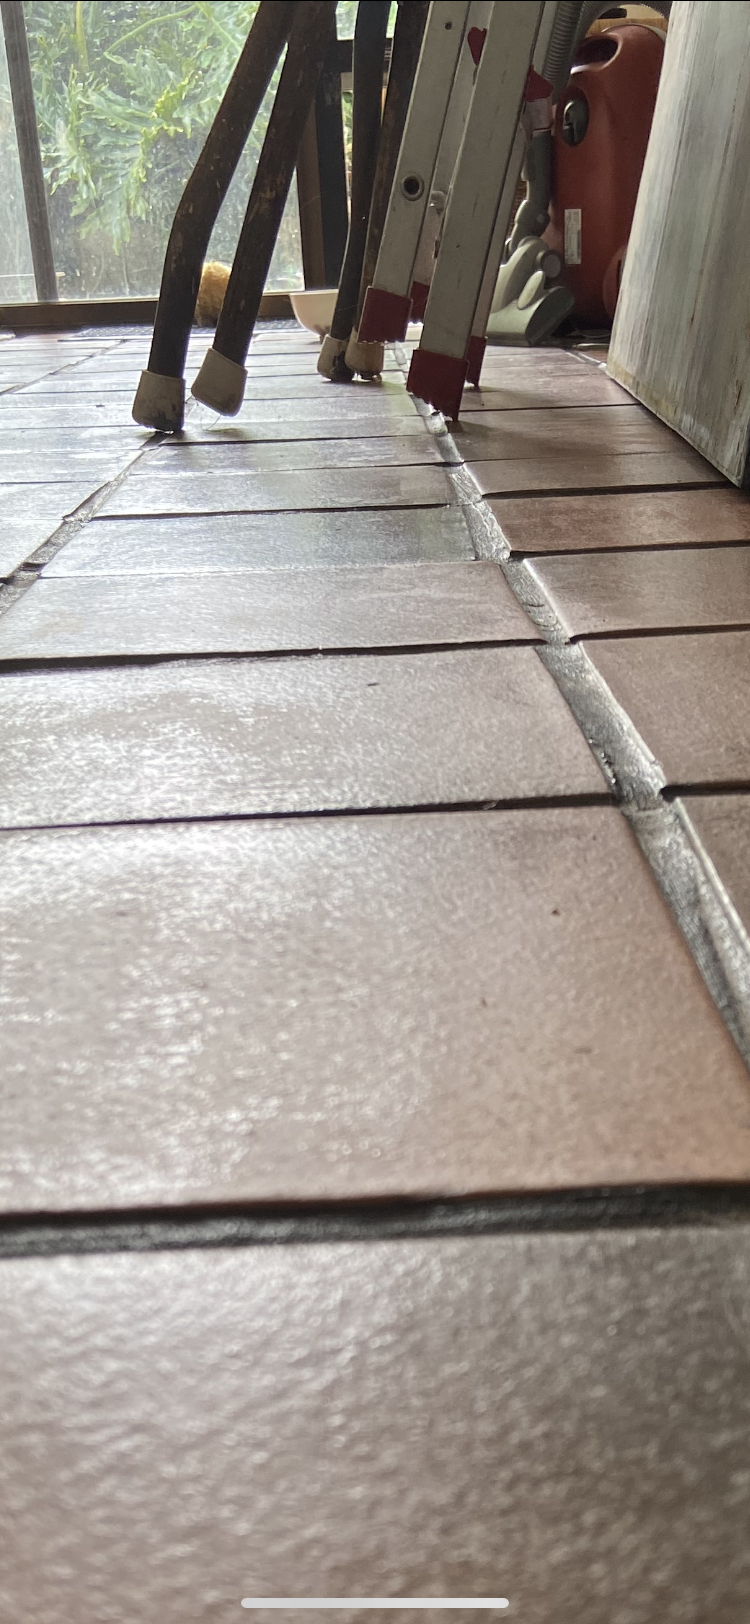 How to level uneven tiles with wide deep  Bunnings Workshop